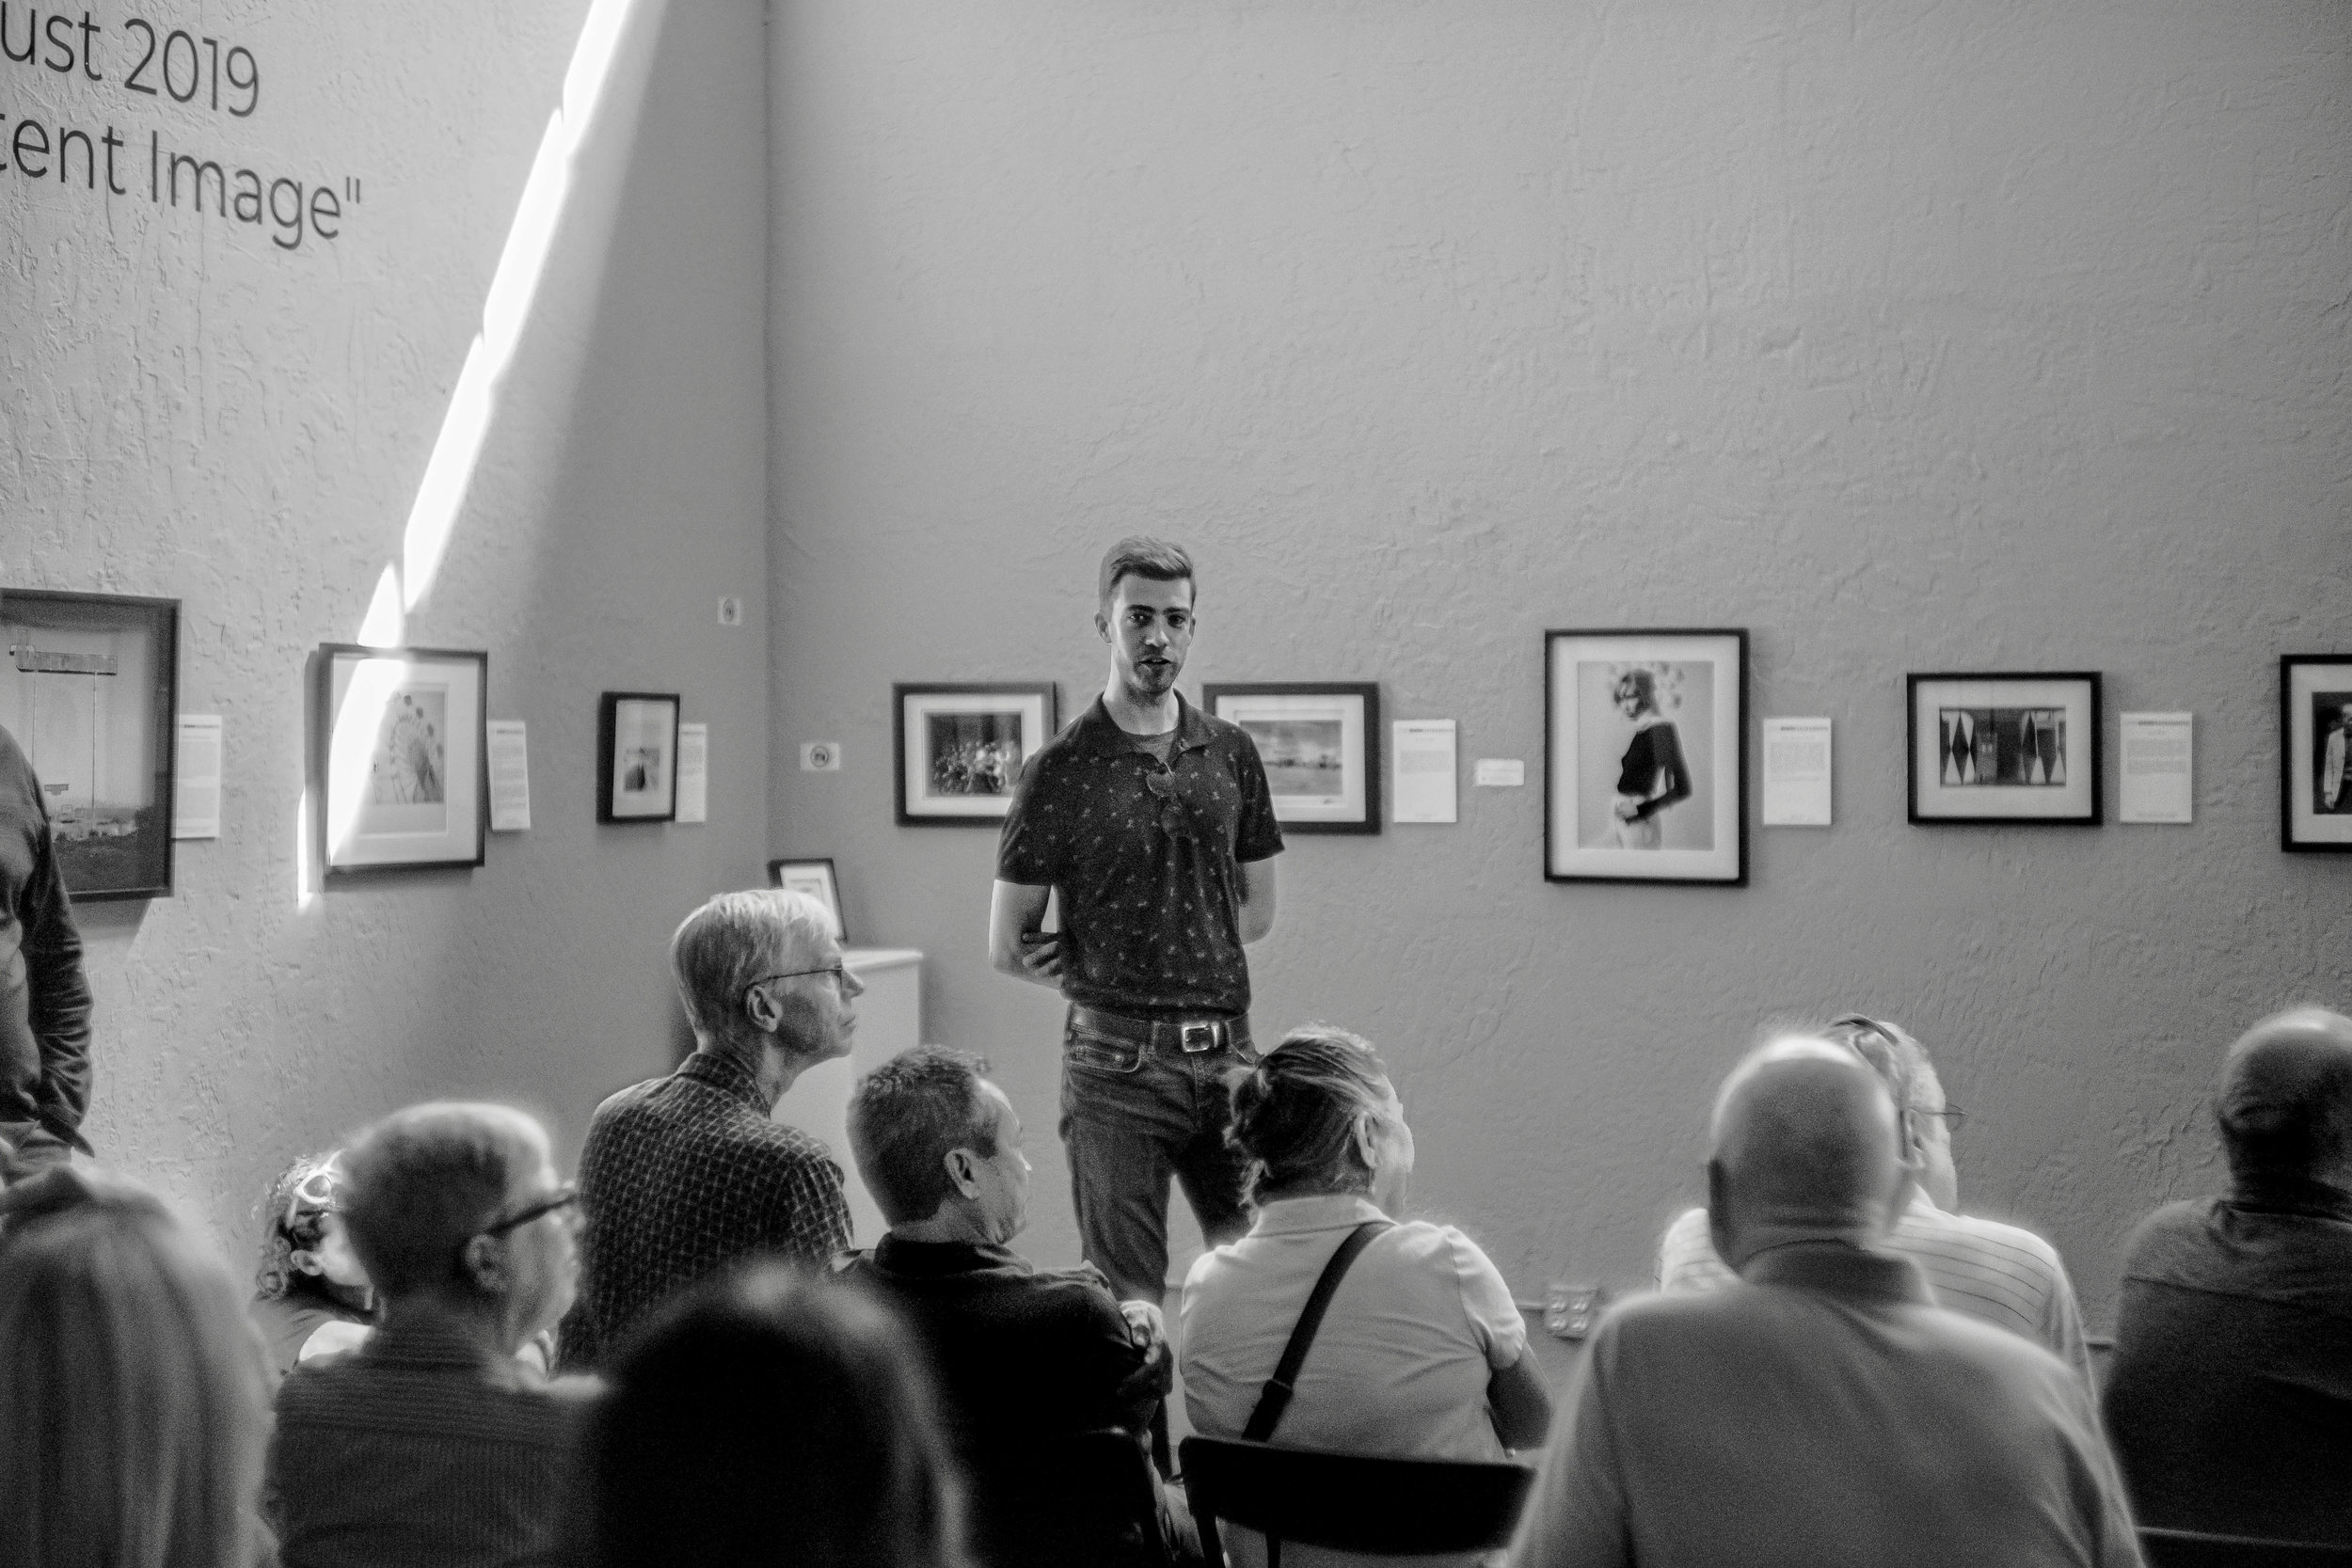 Presenting work from  Maria & Aidan  at Sparrow Gallery in Sacramento, Ca., August 2019. Photograph by Hector Gonzalez.